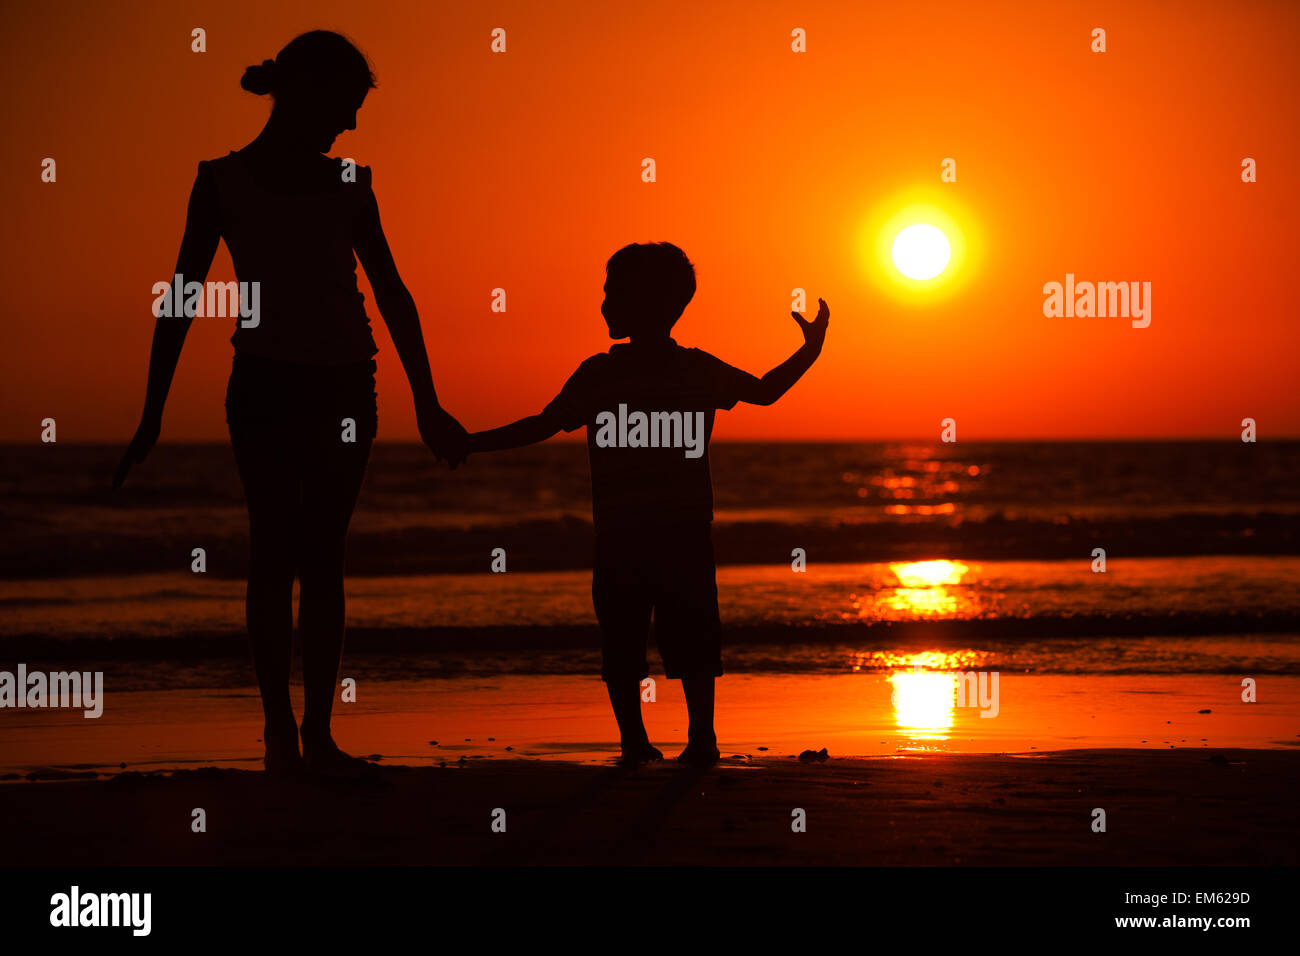 Sunset silhouette of Little brother and sister - Stock Image